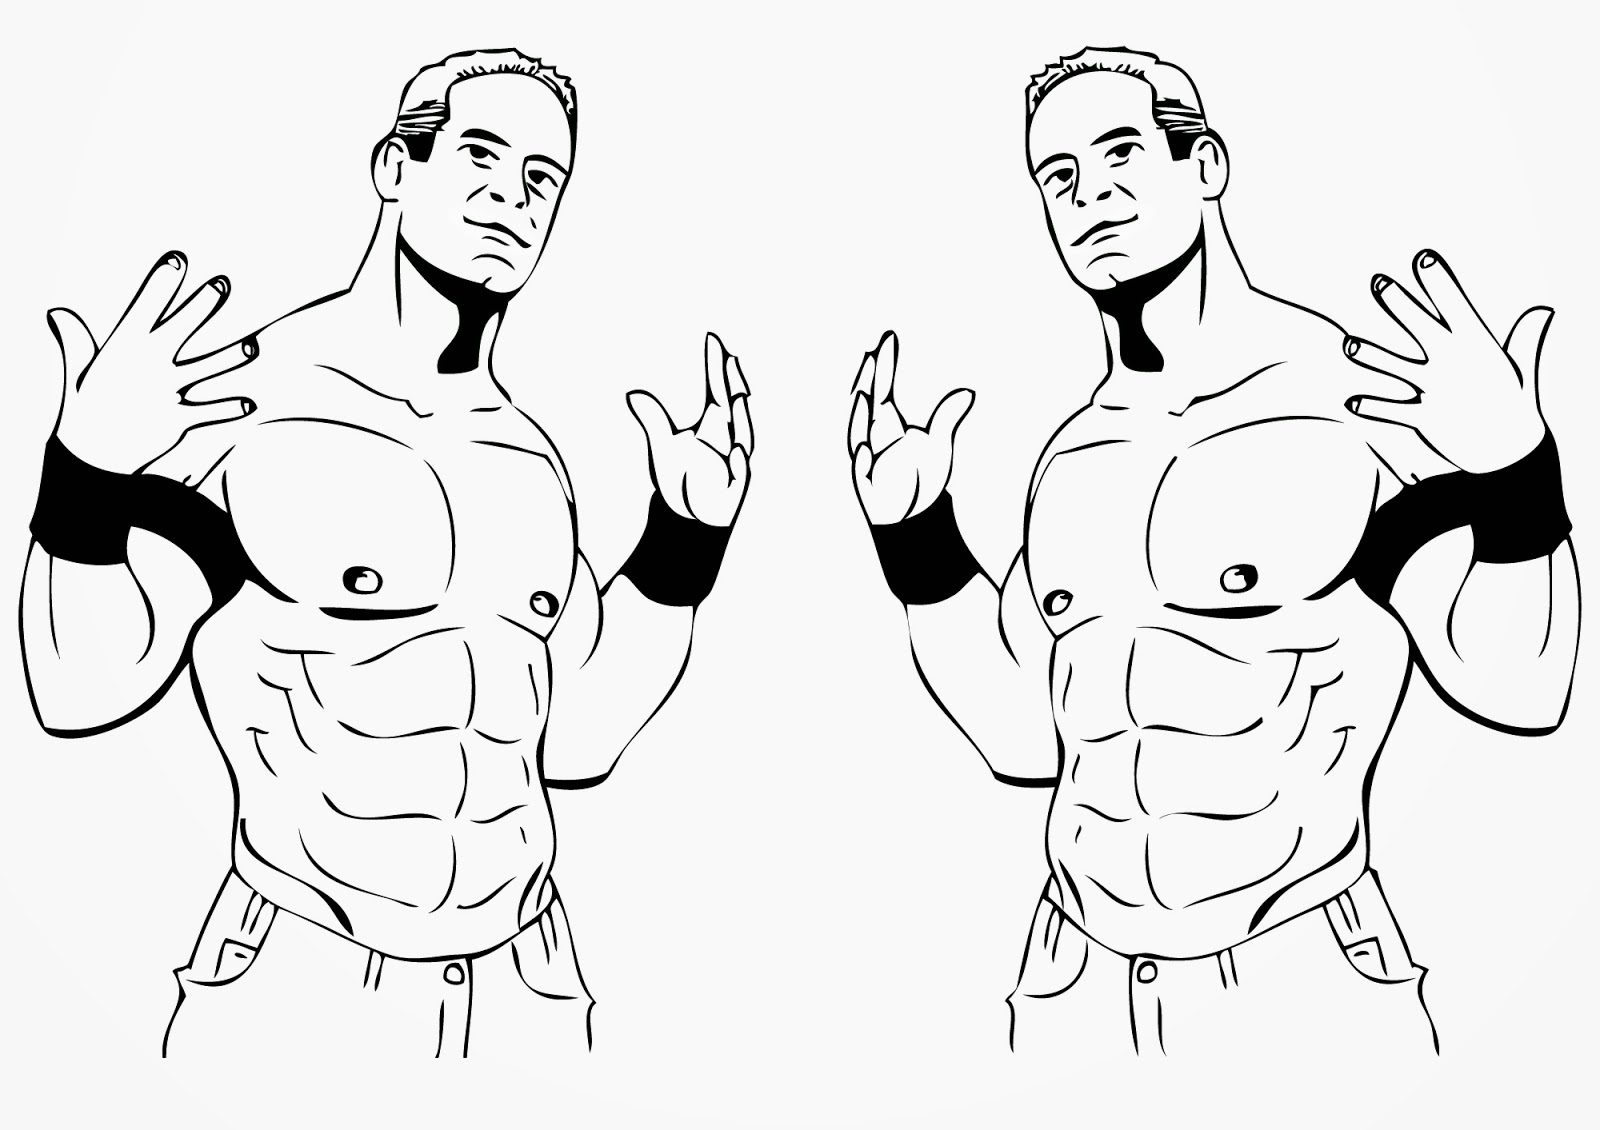 1600x1130 Magic John Cena Coloring Pages Wwe Brock Lesna